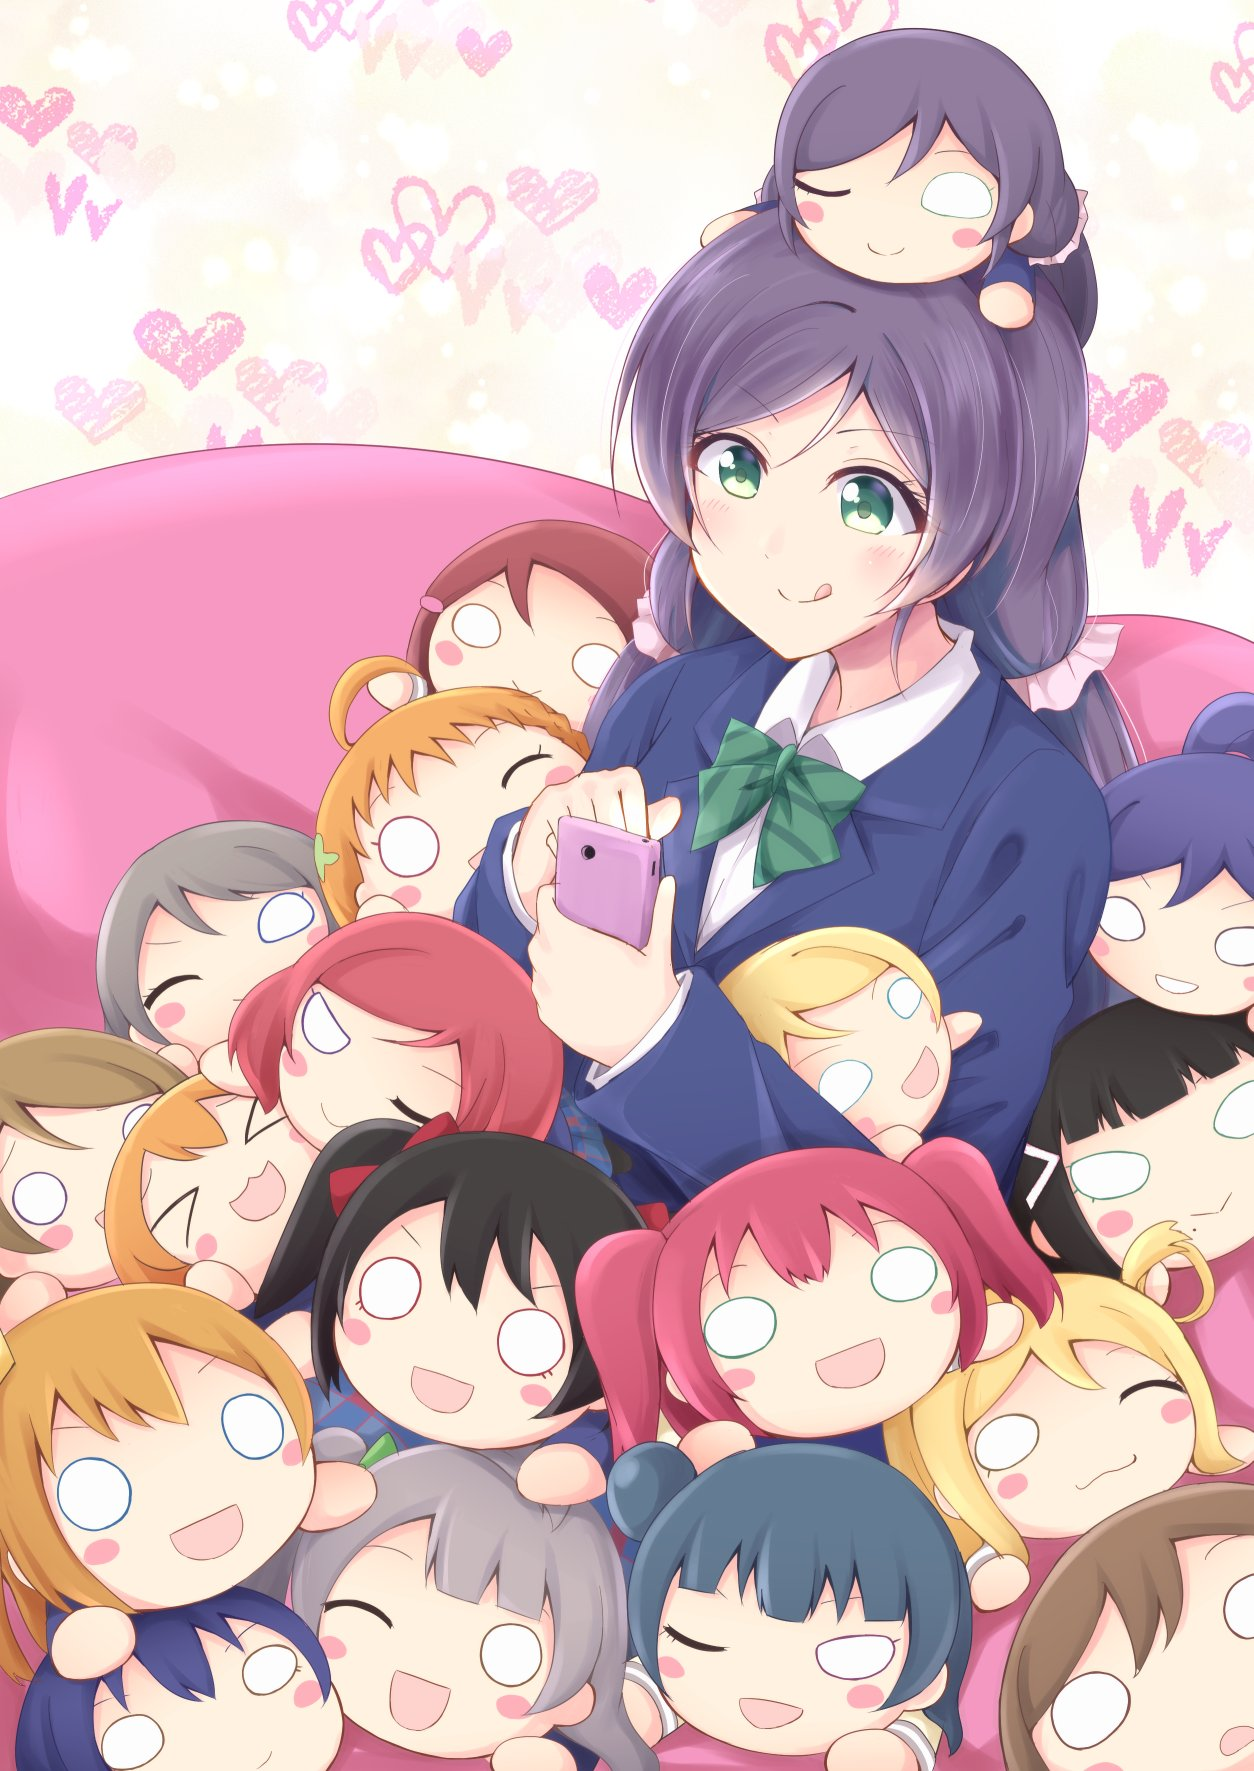 >_< 1girl :> :3 :d :q ;) ;3 ahoge ayase_eli bangs bean_bag_chair black_hair blazer blonde_hair blue_hair blunt_bangs blush_stickers bow brown_hair cellphone character_doll chiro_(bocchiropafe) commentary_request doll_on_head green_bow green_eyes green_neckwear grey_hair hair_ornament hairclip heart highres holding holding_phone hoshizora_rin jacket koizumi_hanayo kousaka_honoka kunikida_hanamaru kurosawa_dia kurosawa_ruby long_hair long_sleeves love_live! love_live!_school_idol_project love_live!_sunshine!! low_twintails matsuura_kanan minami_kotori mole mole_under_mouth nesoberi nishikino_maki o_o ohara_mari one_eye_closed open_mouth orange_hair otonokizaka_school_uniform phone pink_scrunchie playing_games ponytail puchiguru_love_live! purple_hair red_bow redhead sakurauchi_riko scrunchie side_bun smartphone smile sonoda_umi striped_neckwear takami_chika tongue tongue_out toujou_nozomi tsushima_yoshiko twintails v-shaped_eyebrows watanabe_you xd yazawa_nico